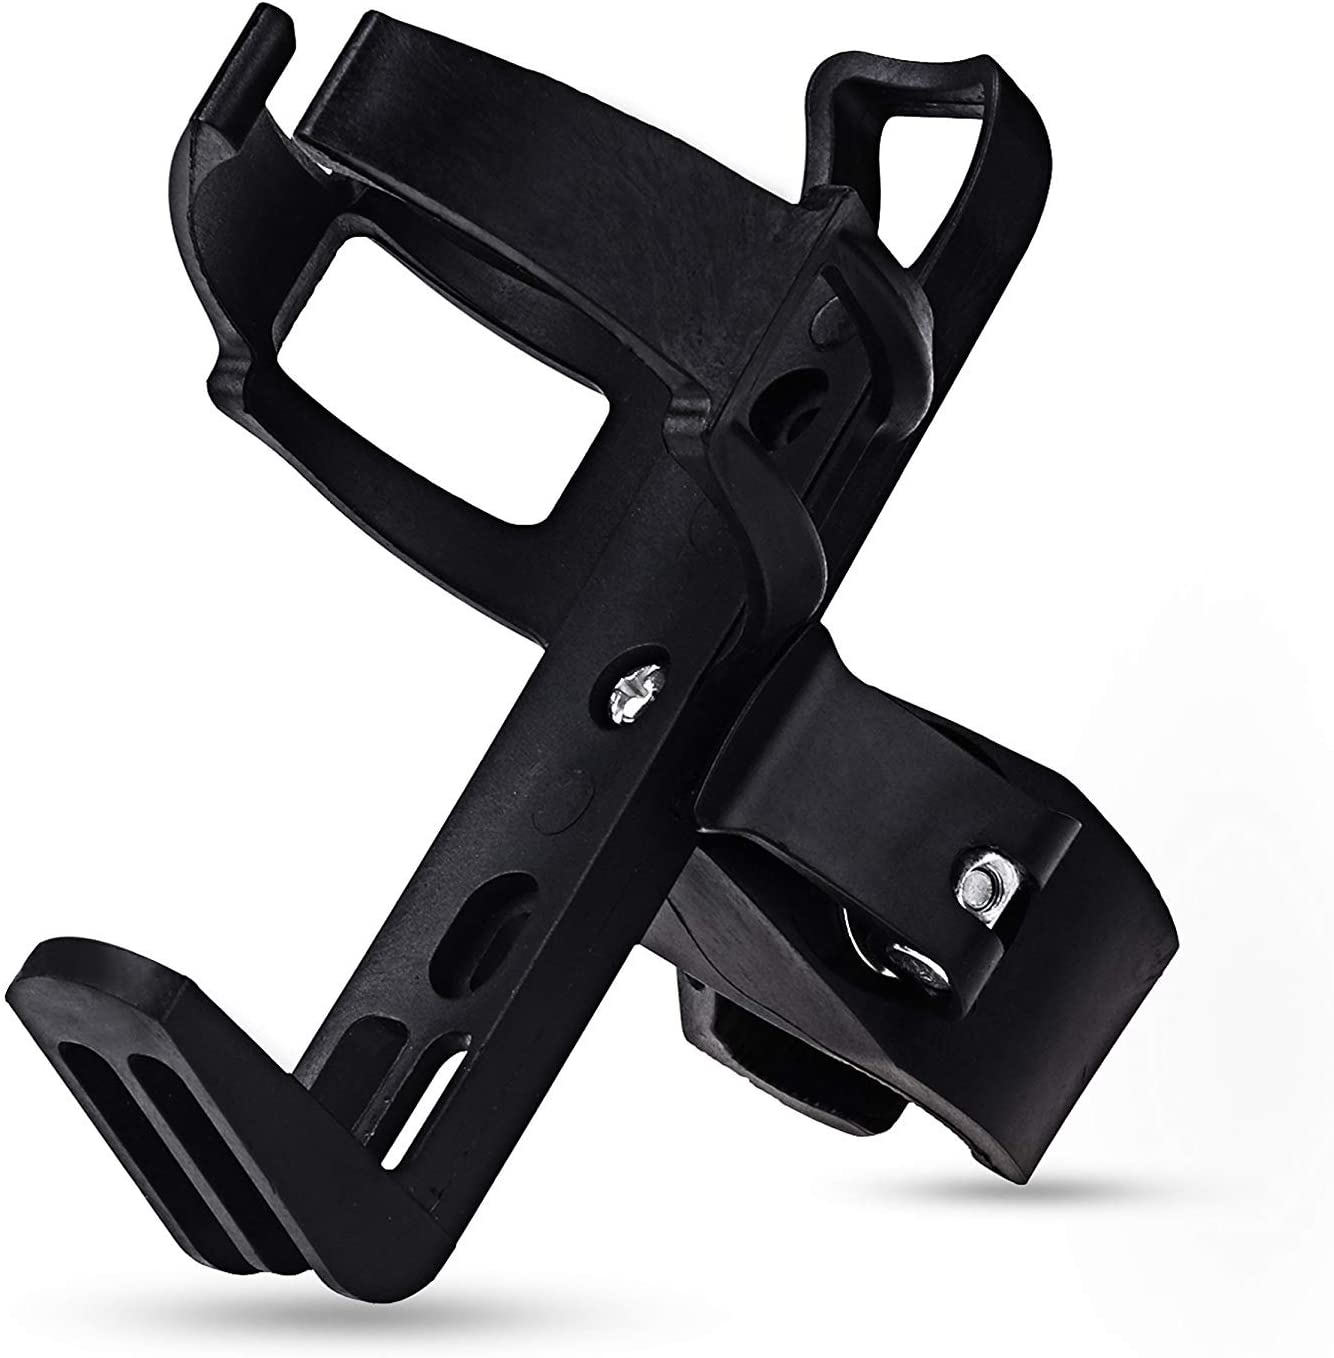 Details about  /Adjustable Plastic Bike Bicycle Cycling Water Bottle Rack Cup Cage Holder+Scr lI